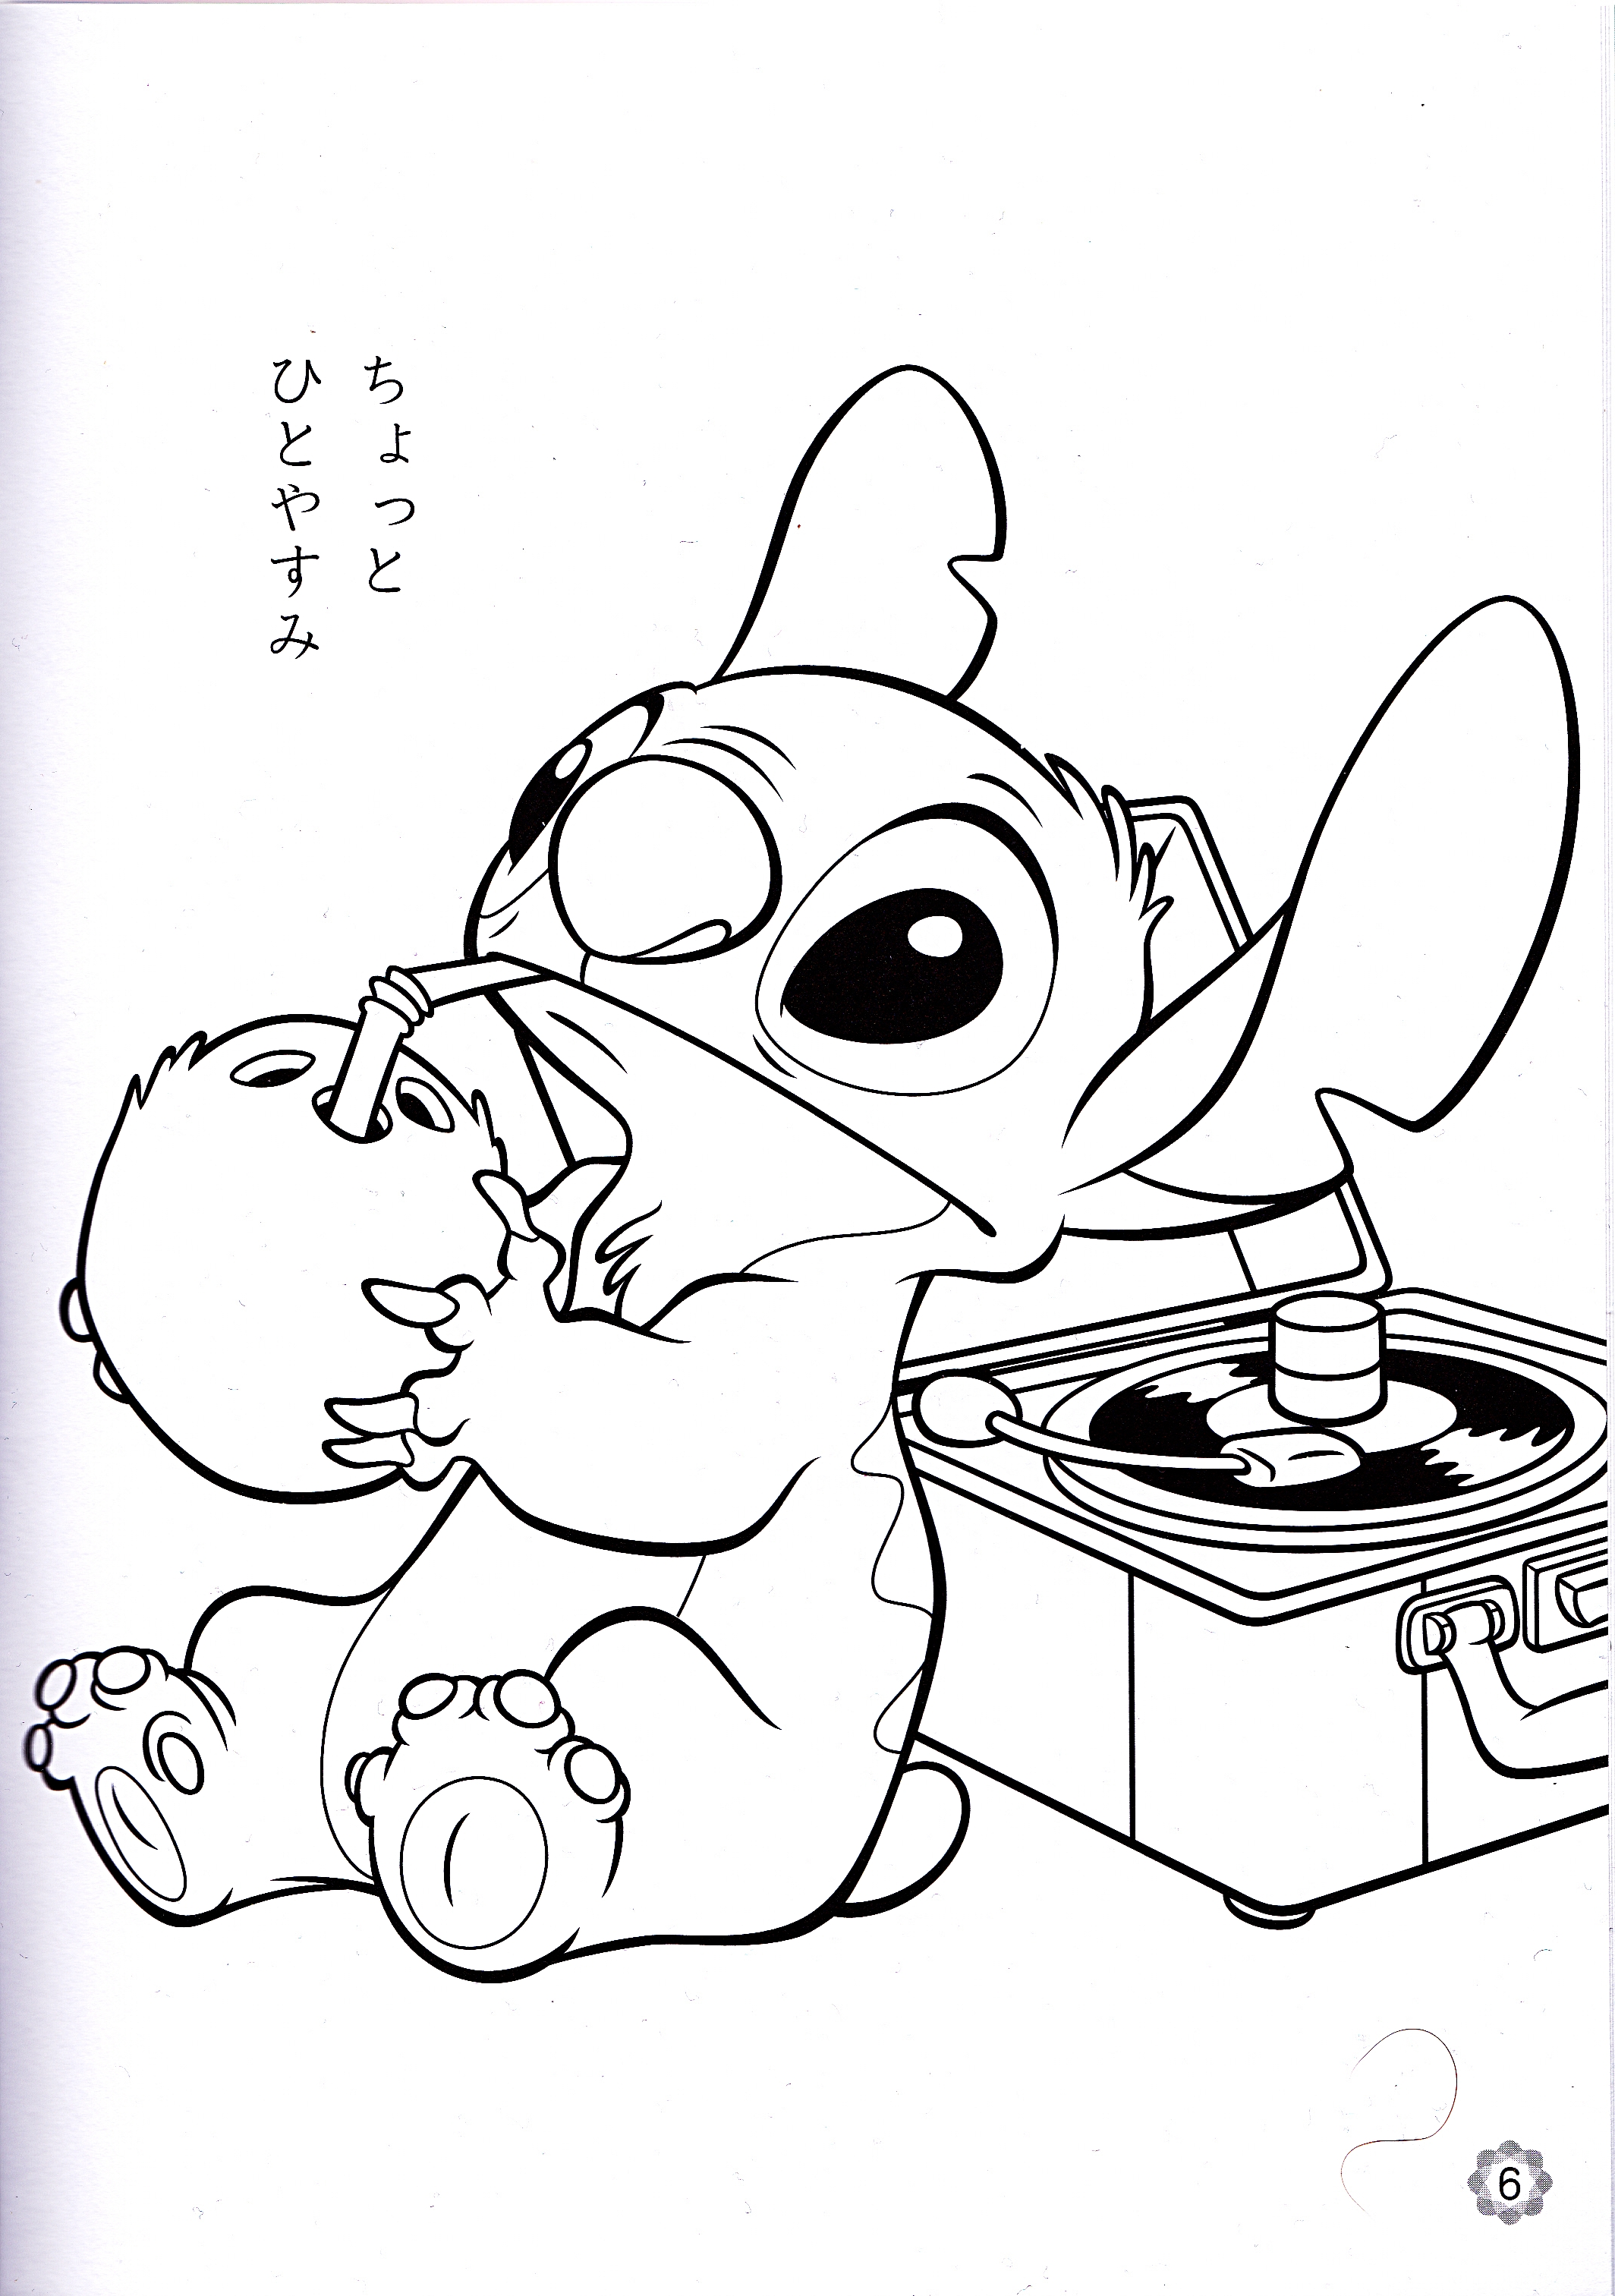 Free Walt Disney Coloring Pages Stitch Characters Photo